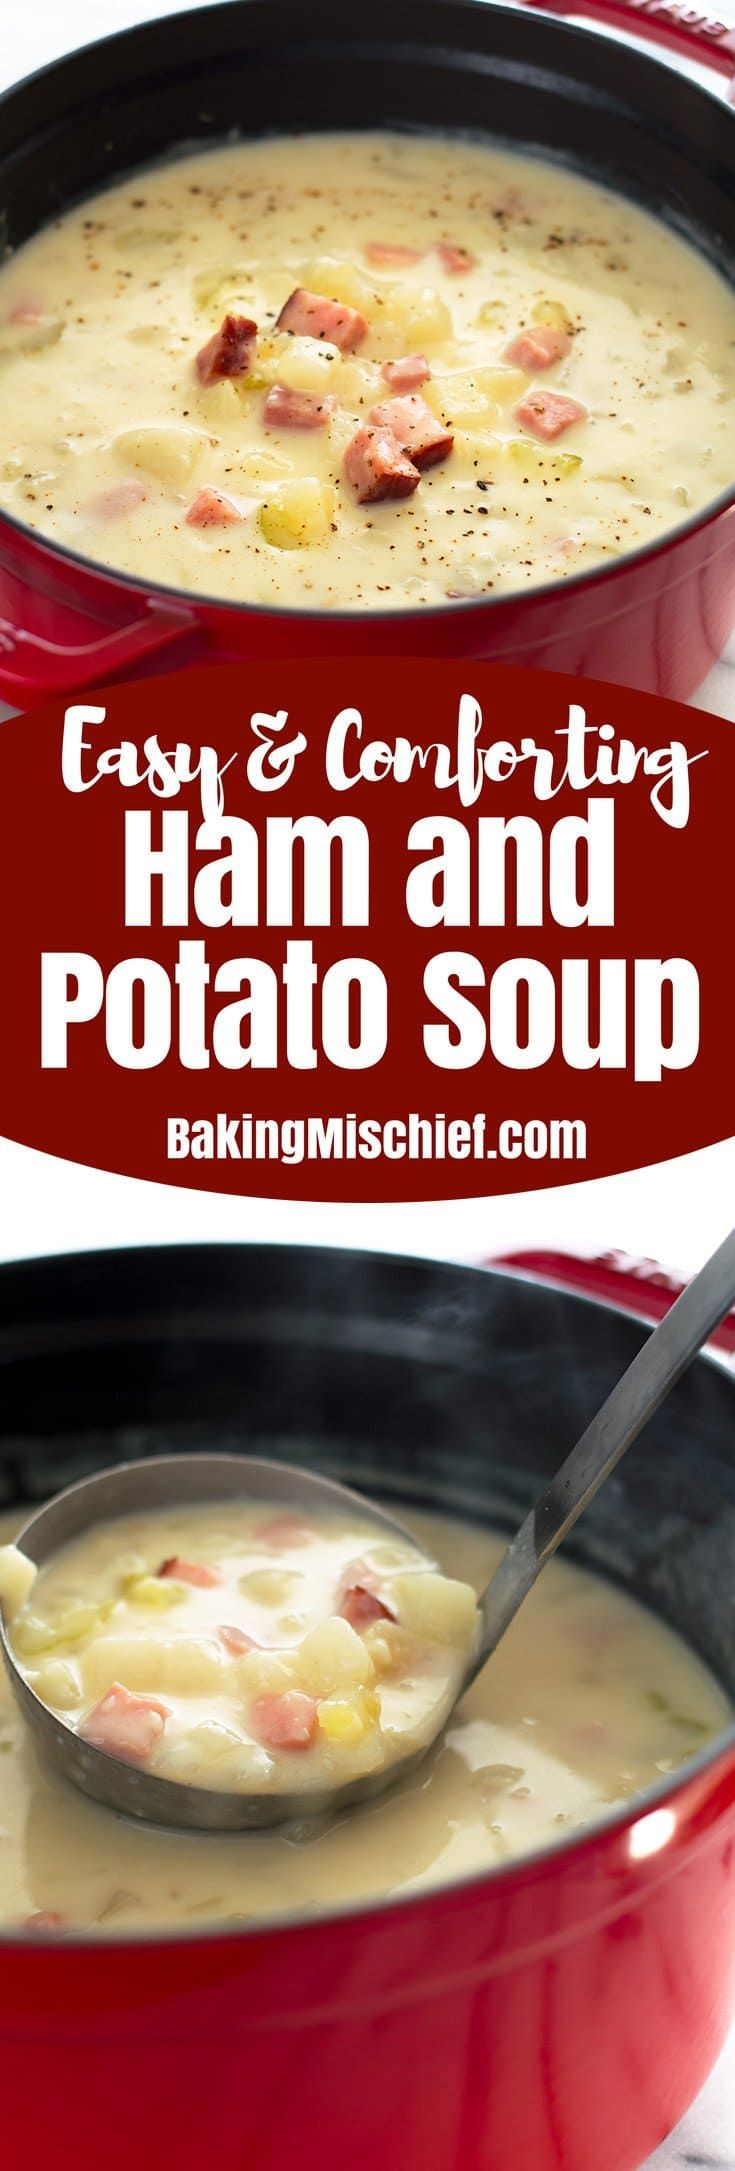 Healthy ham and potato soup is an easy, fast, and low-calorie dinner and one of my favorite busy weeknight meals. From BakingMischief.com